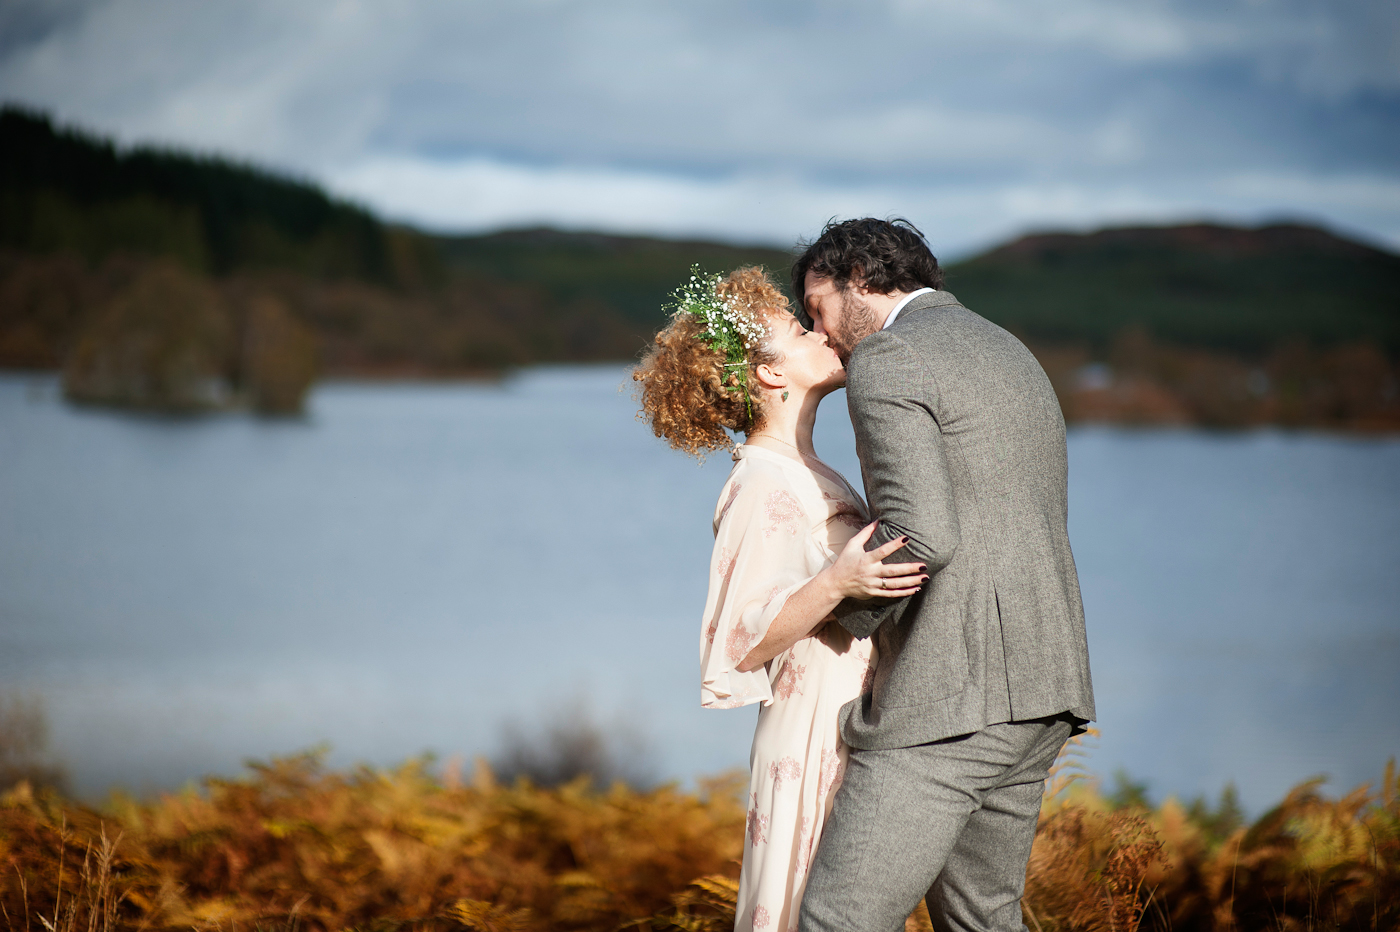 Highland_elopement_wedding_photography-22.jpg